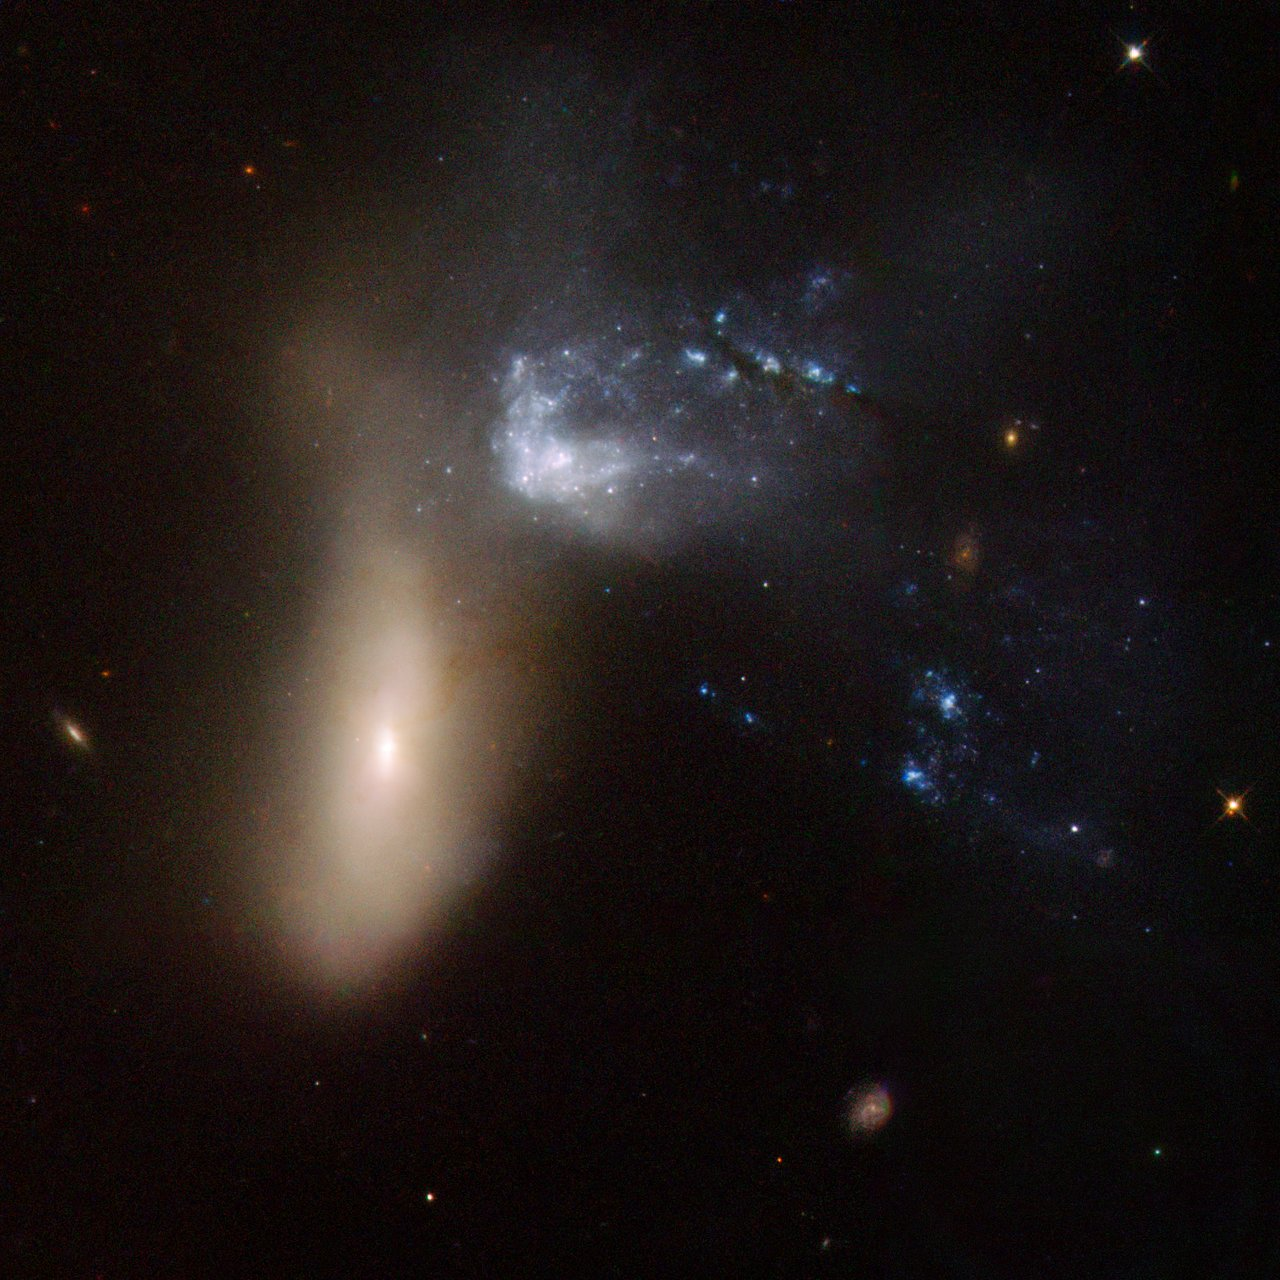 hubble galaxies pair - photo #19